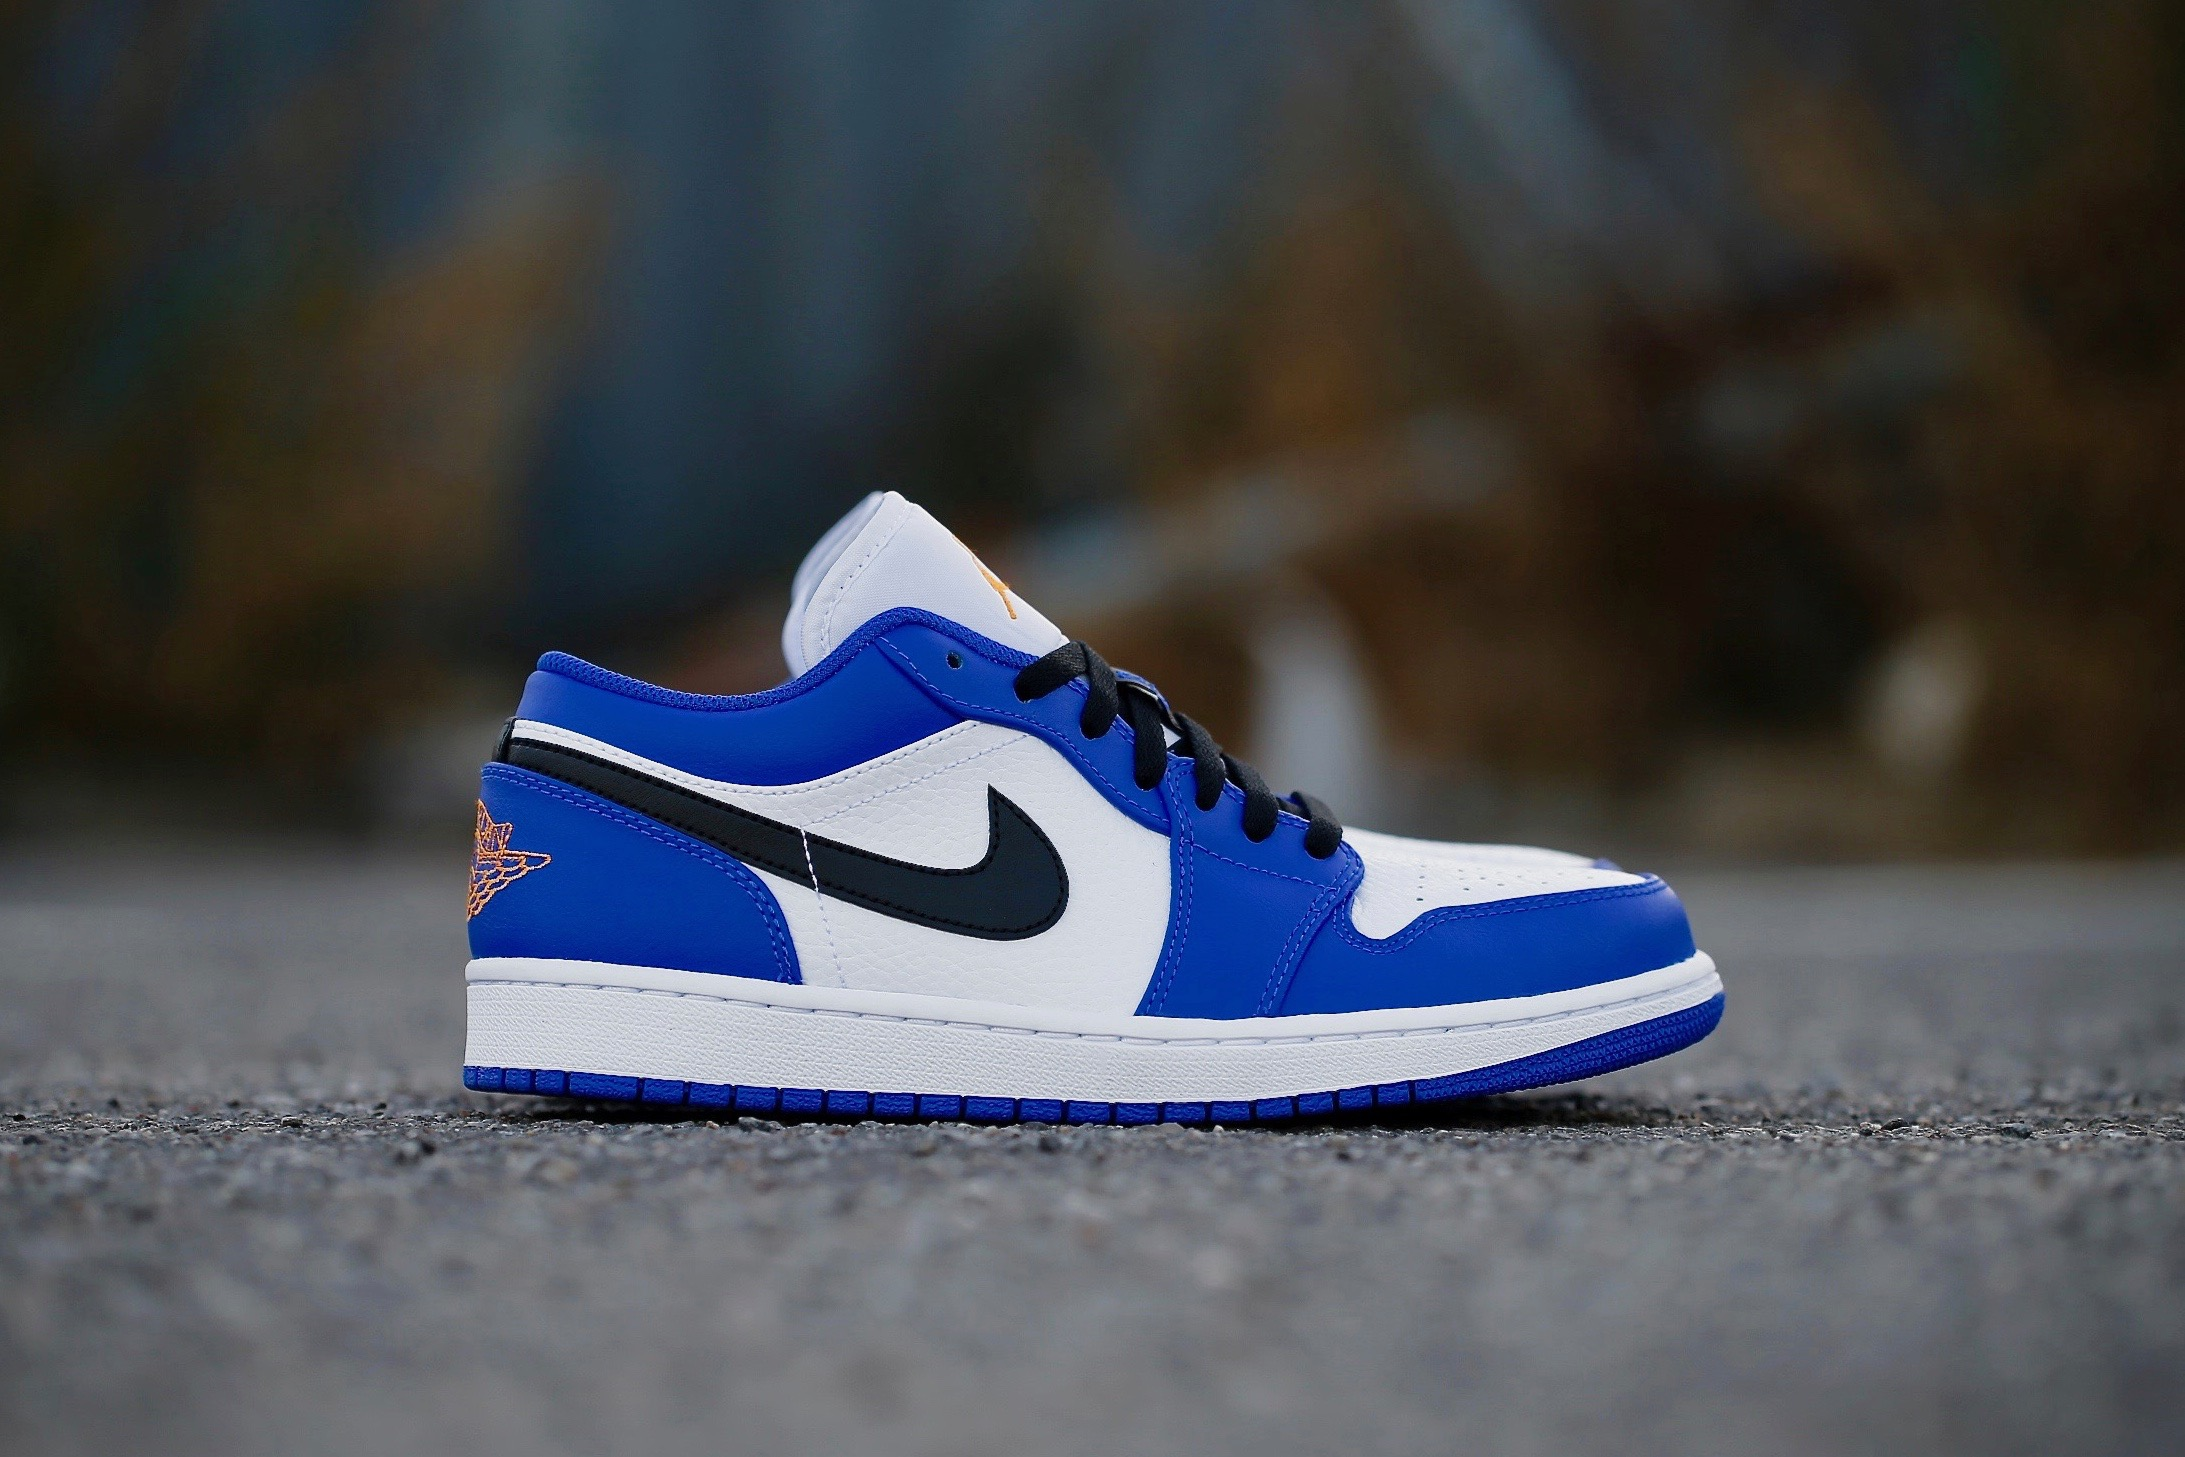 4f5fec258c585a Air Jordan 1 Low – Hyper Royal   Black   Orange Peel – STASP